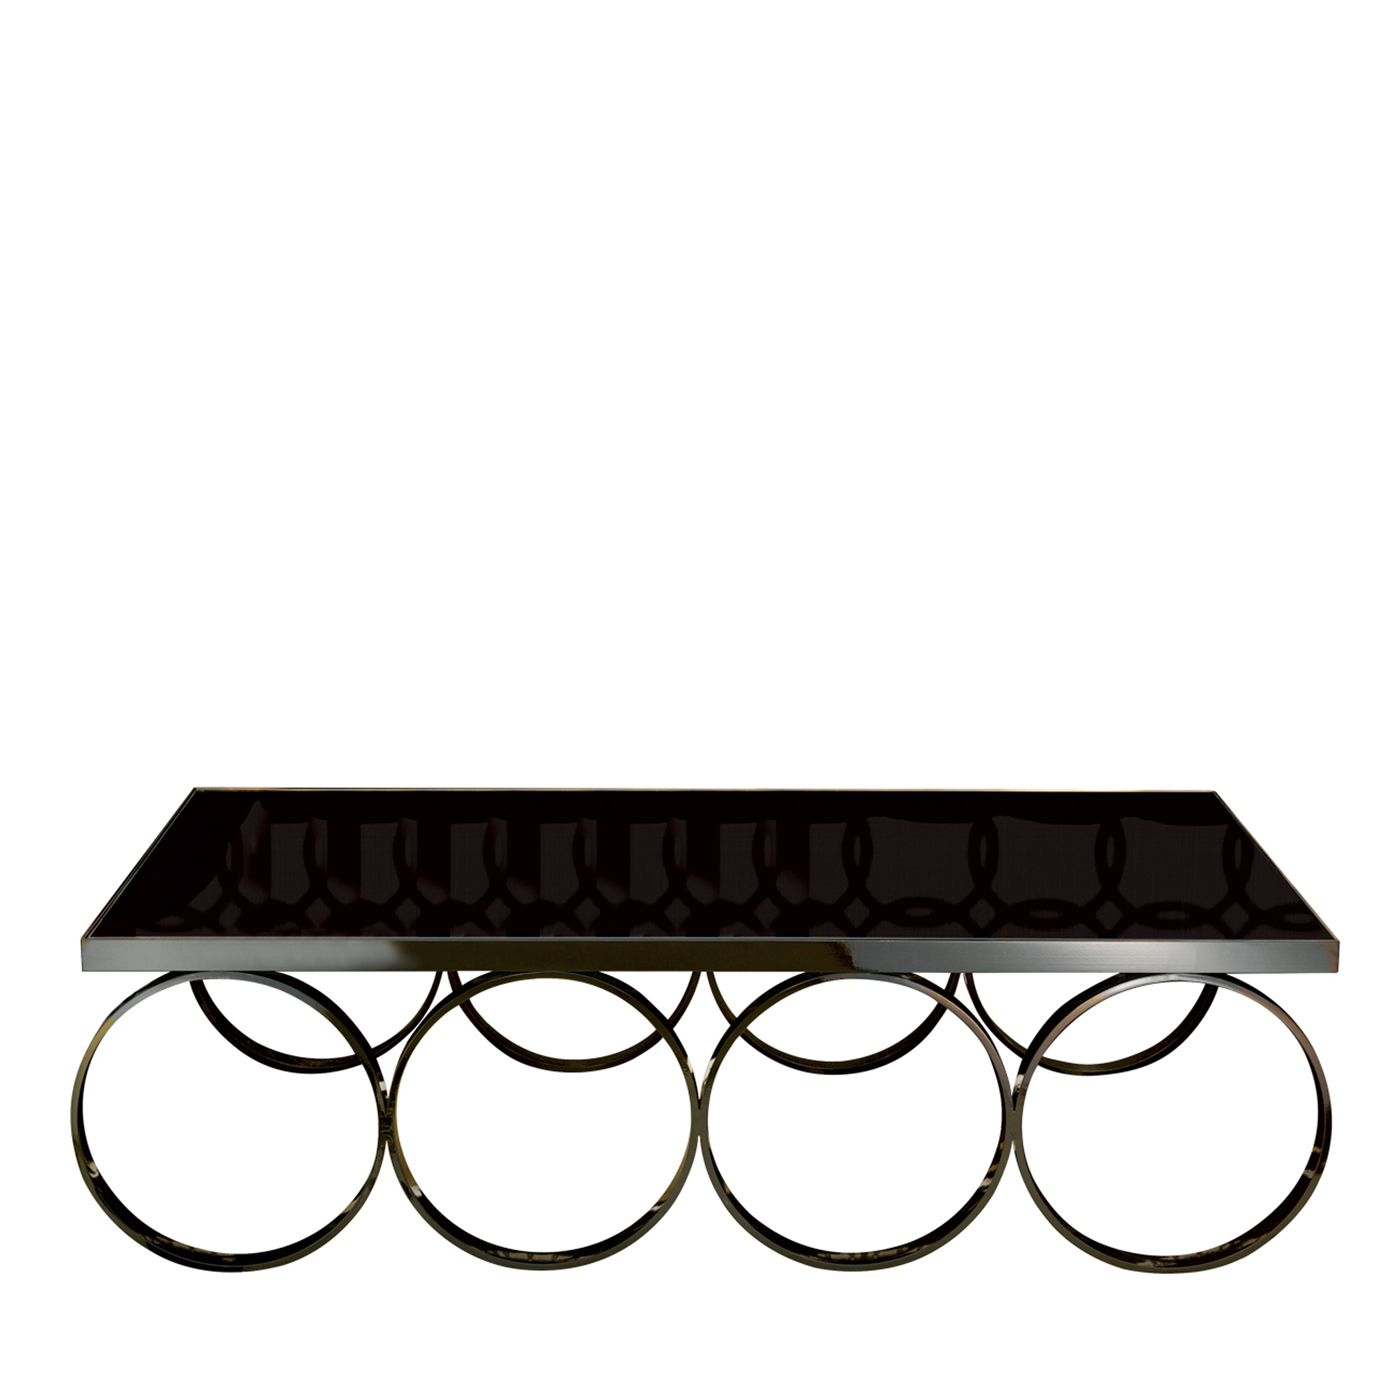 Glass Coffee Tables For Clean Interior Design interior design Glass Coffee Tables For Clean Interior Design DOMEMI 15220190401 6 wh2ux8